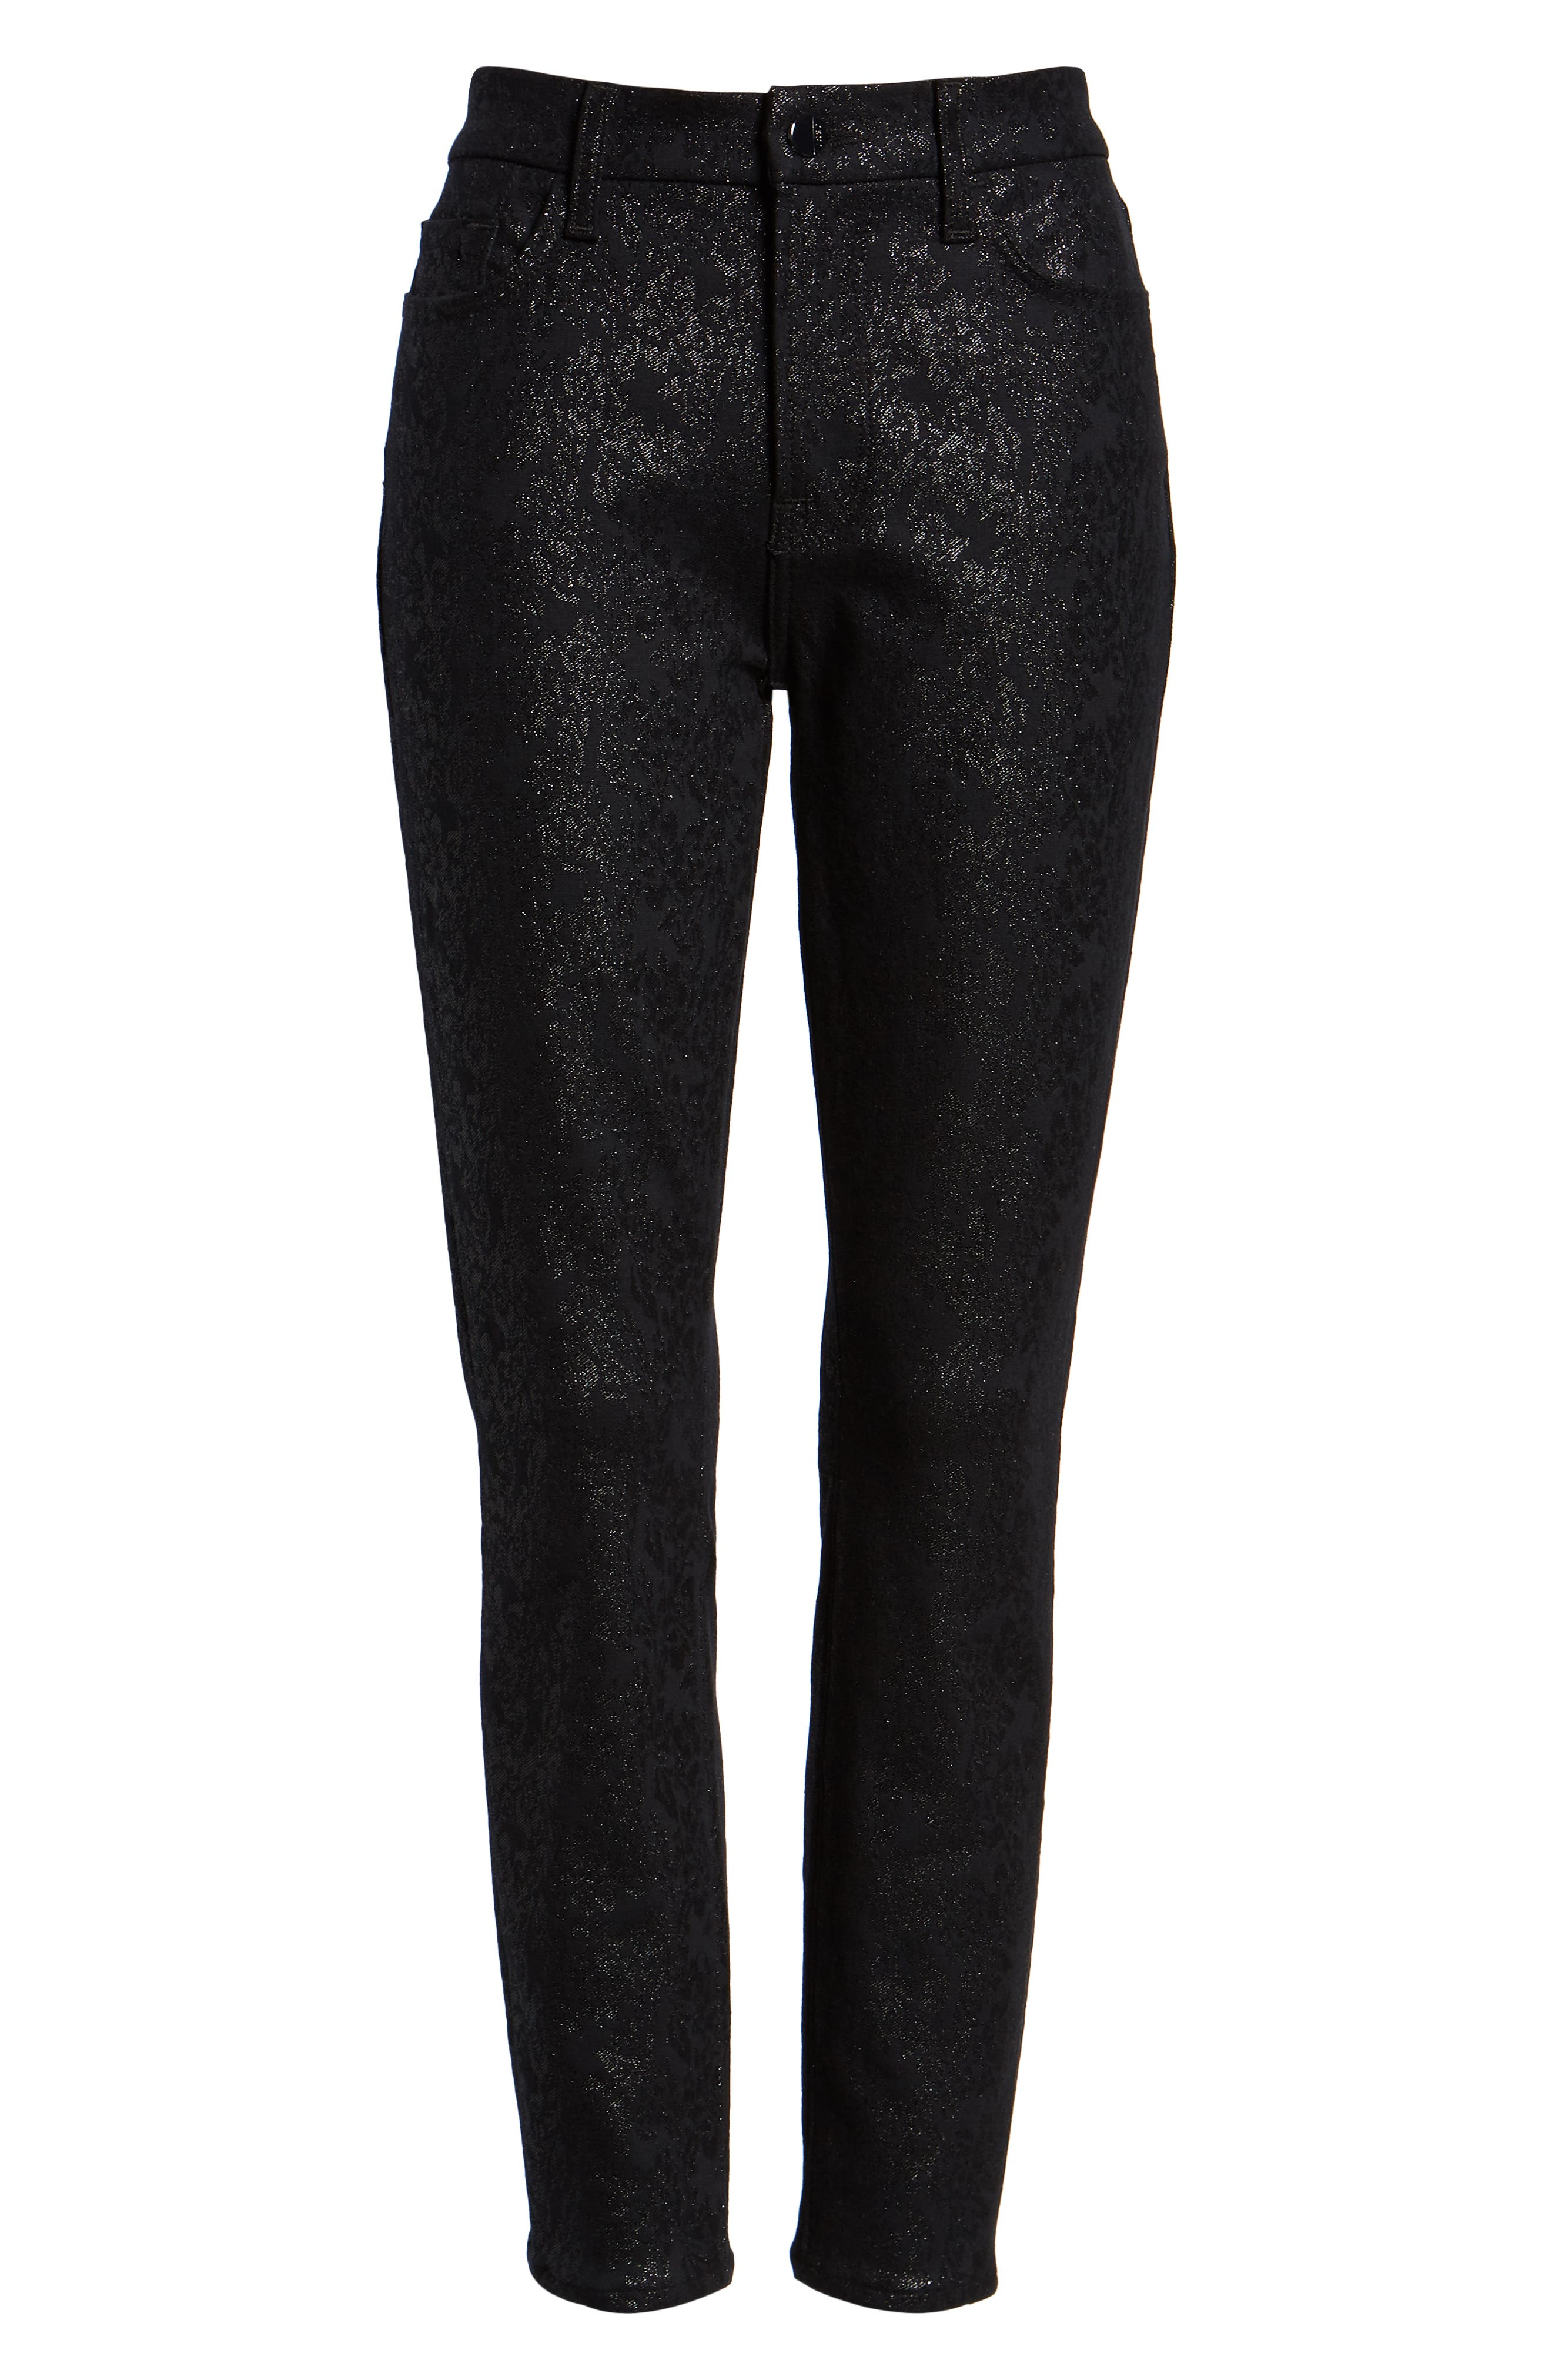 JEN7 BY 7 FOR ALL MANKIND, Floral Metallic Ankle Skinny Jeans, Alternate thumbnail 7, color, BLACK